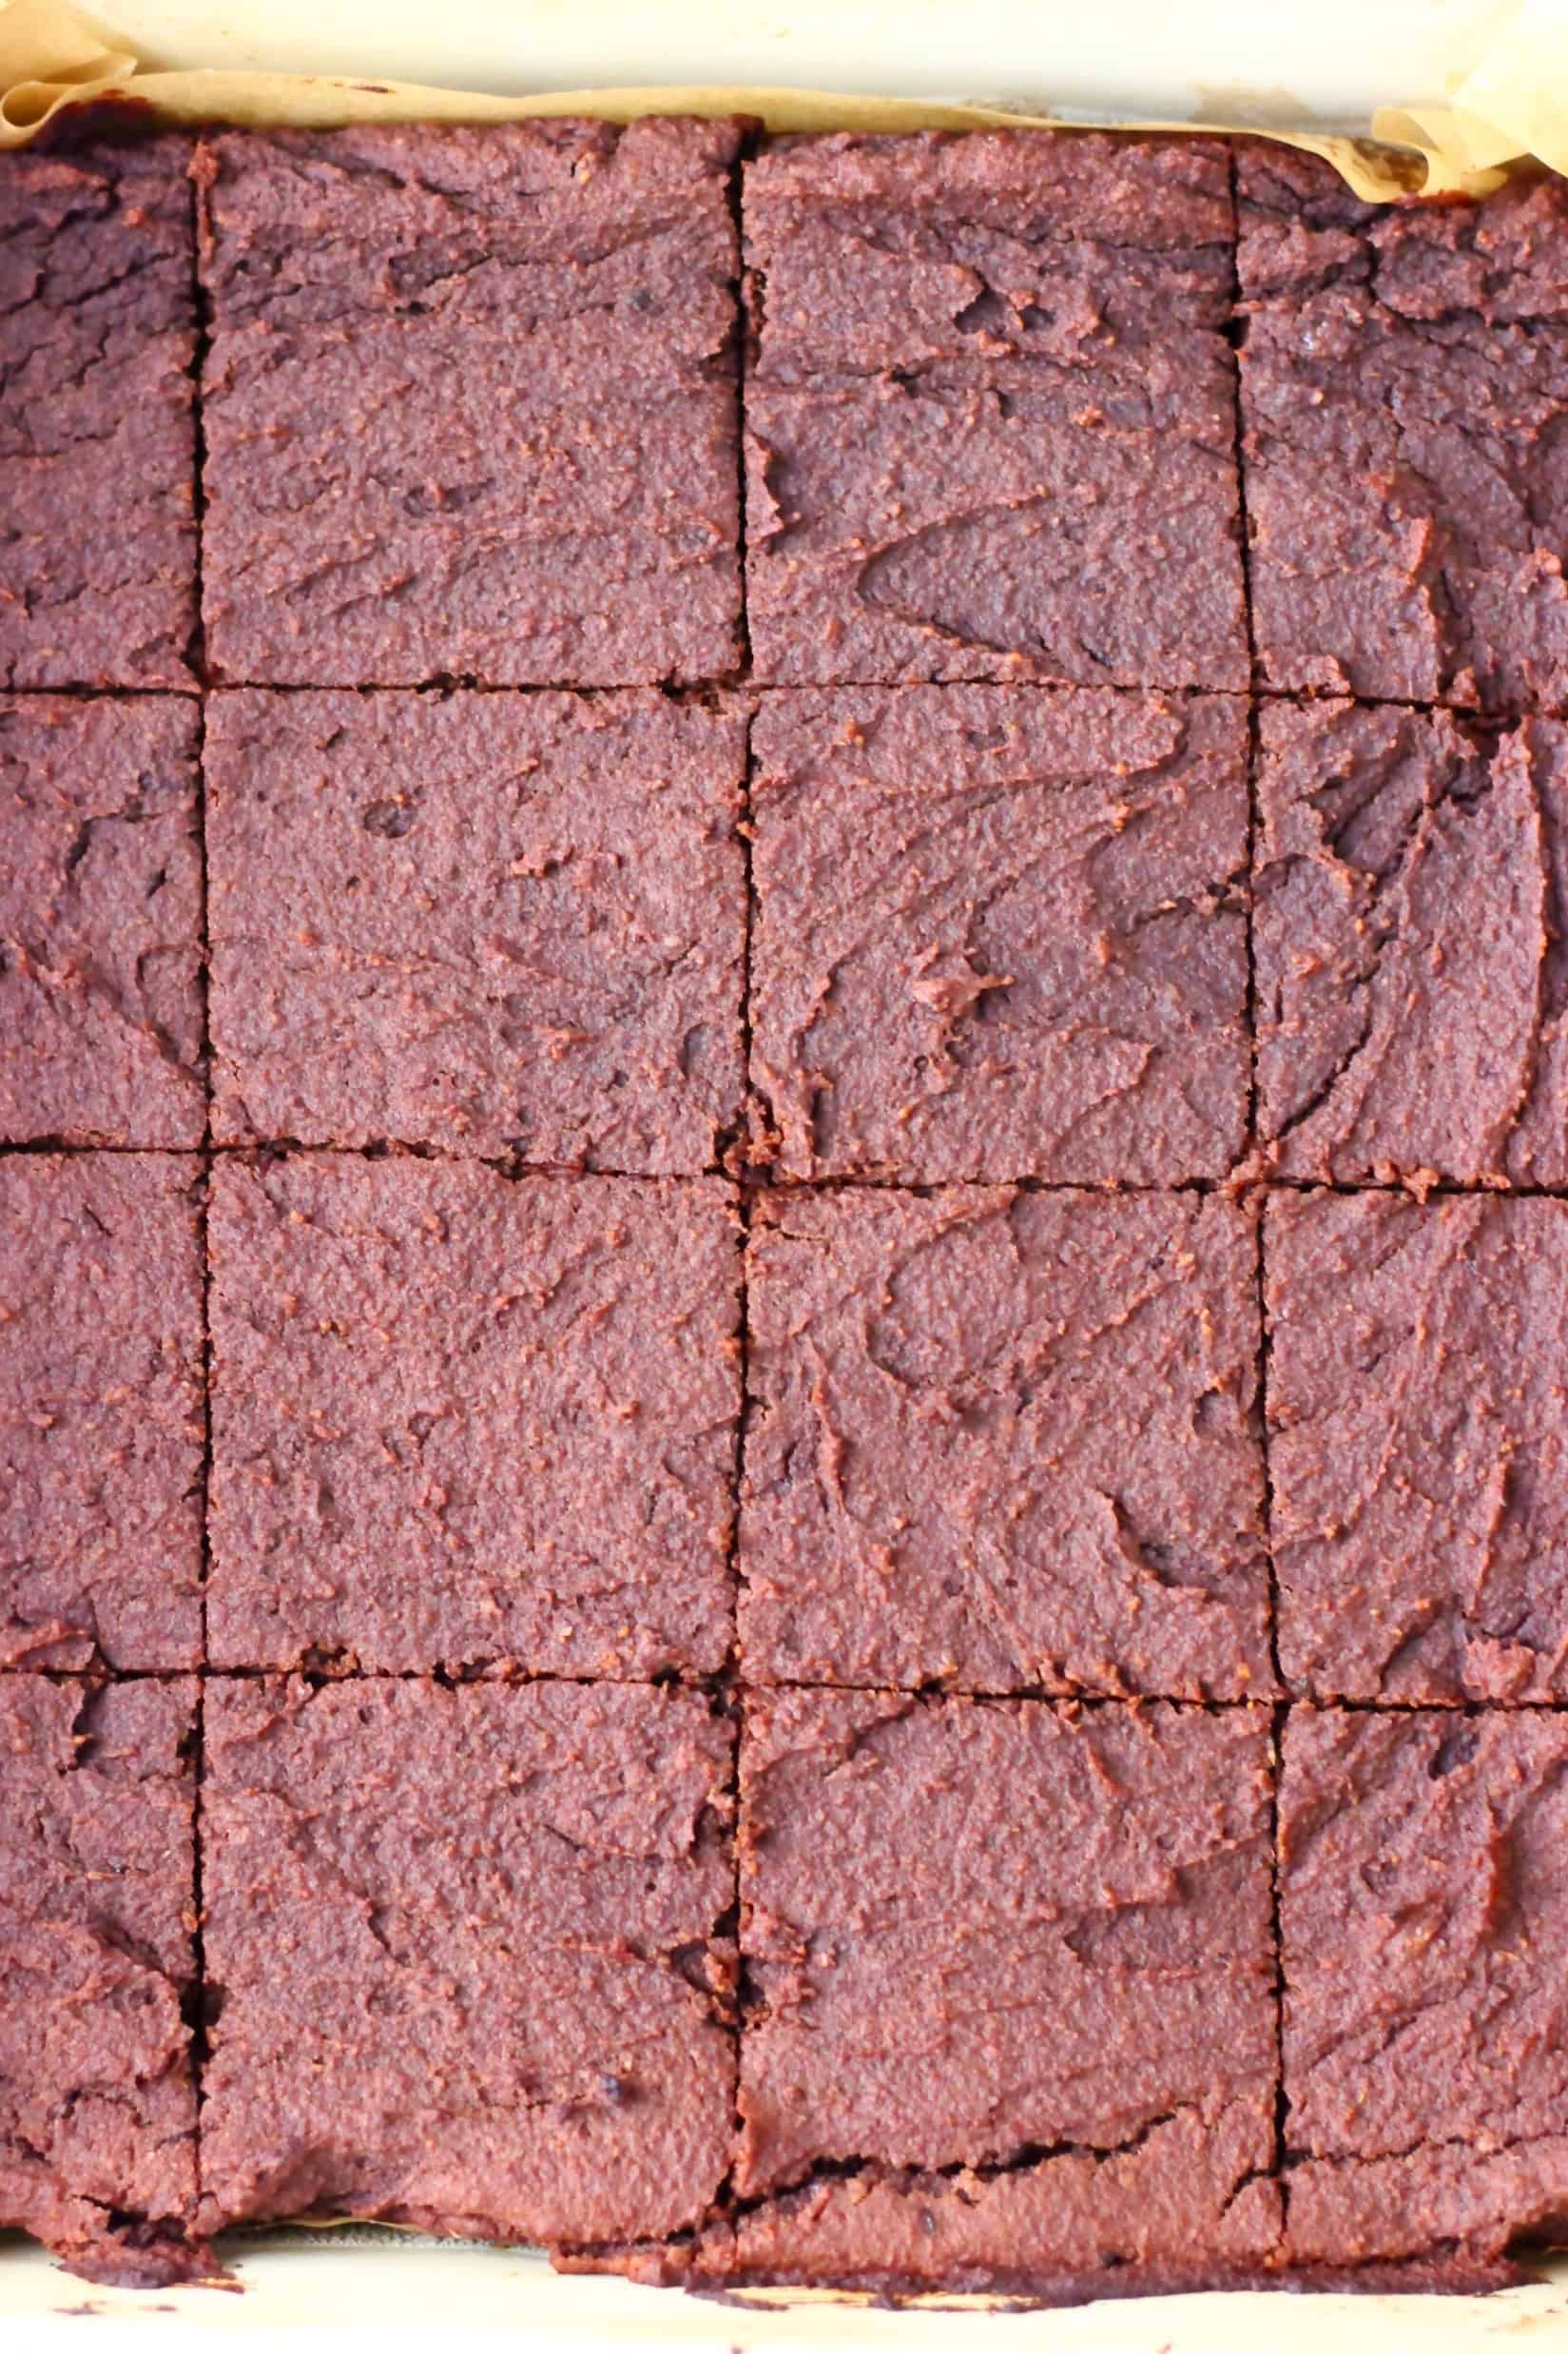 Baked sweet potato brownies cut into squares in a square baking tin lined with baking paper